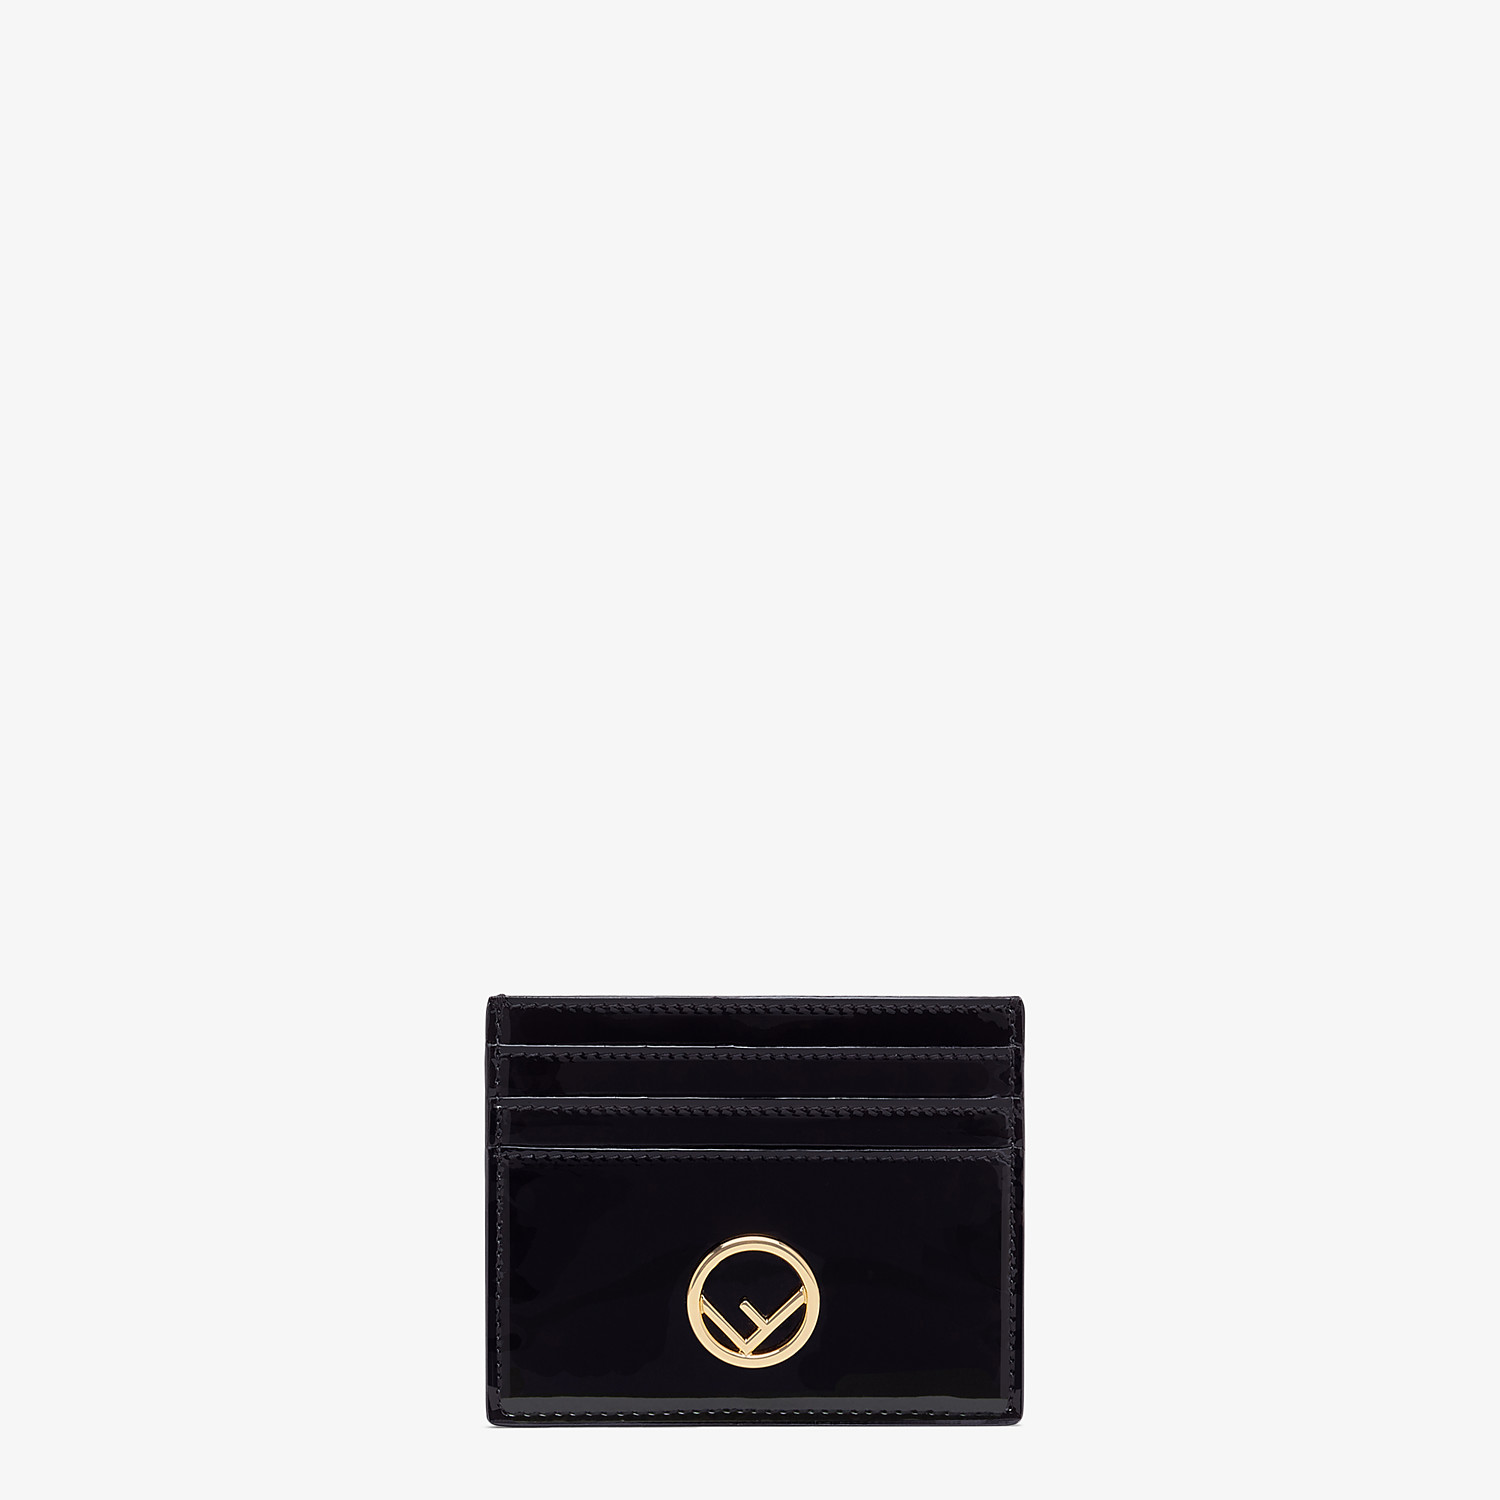 FENDI CARD HOLDER - Flat card holder in black patent leather - view 1 detail